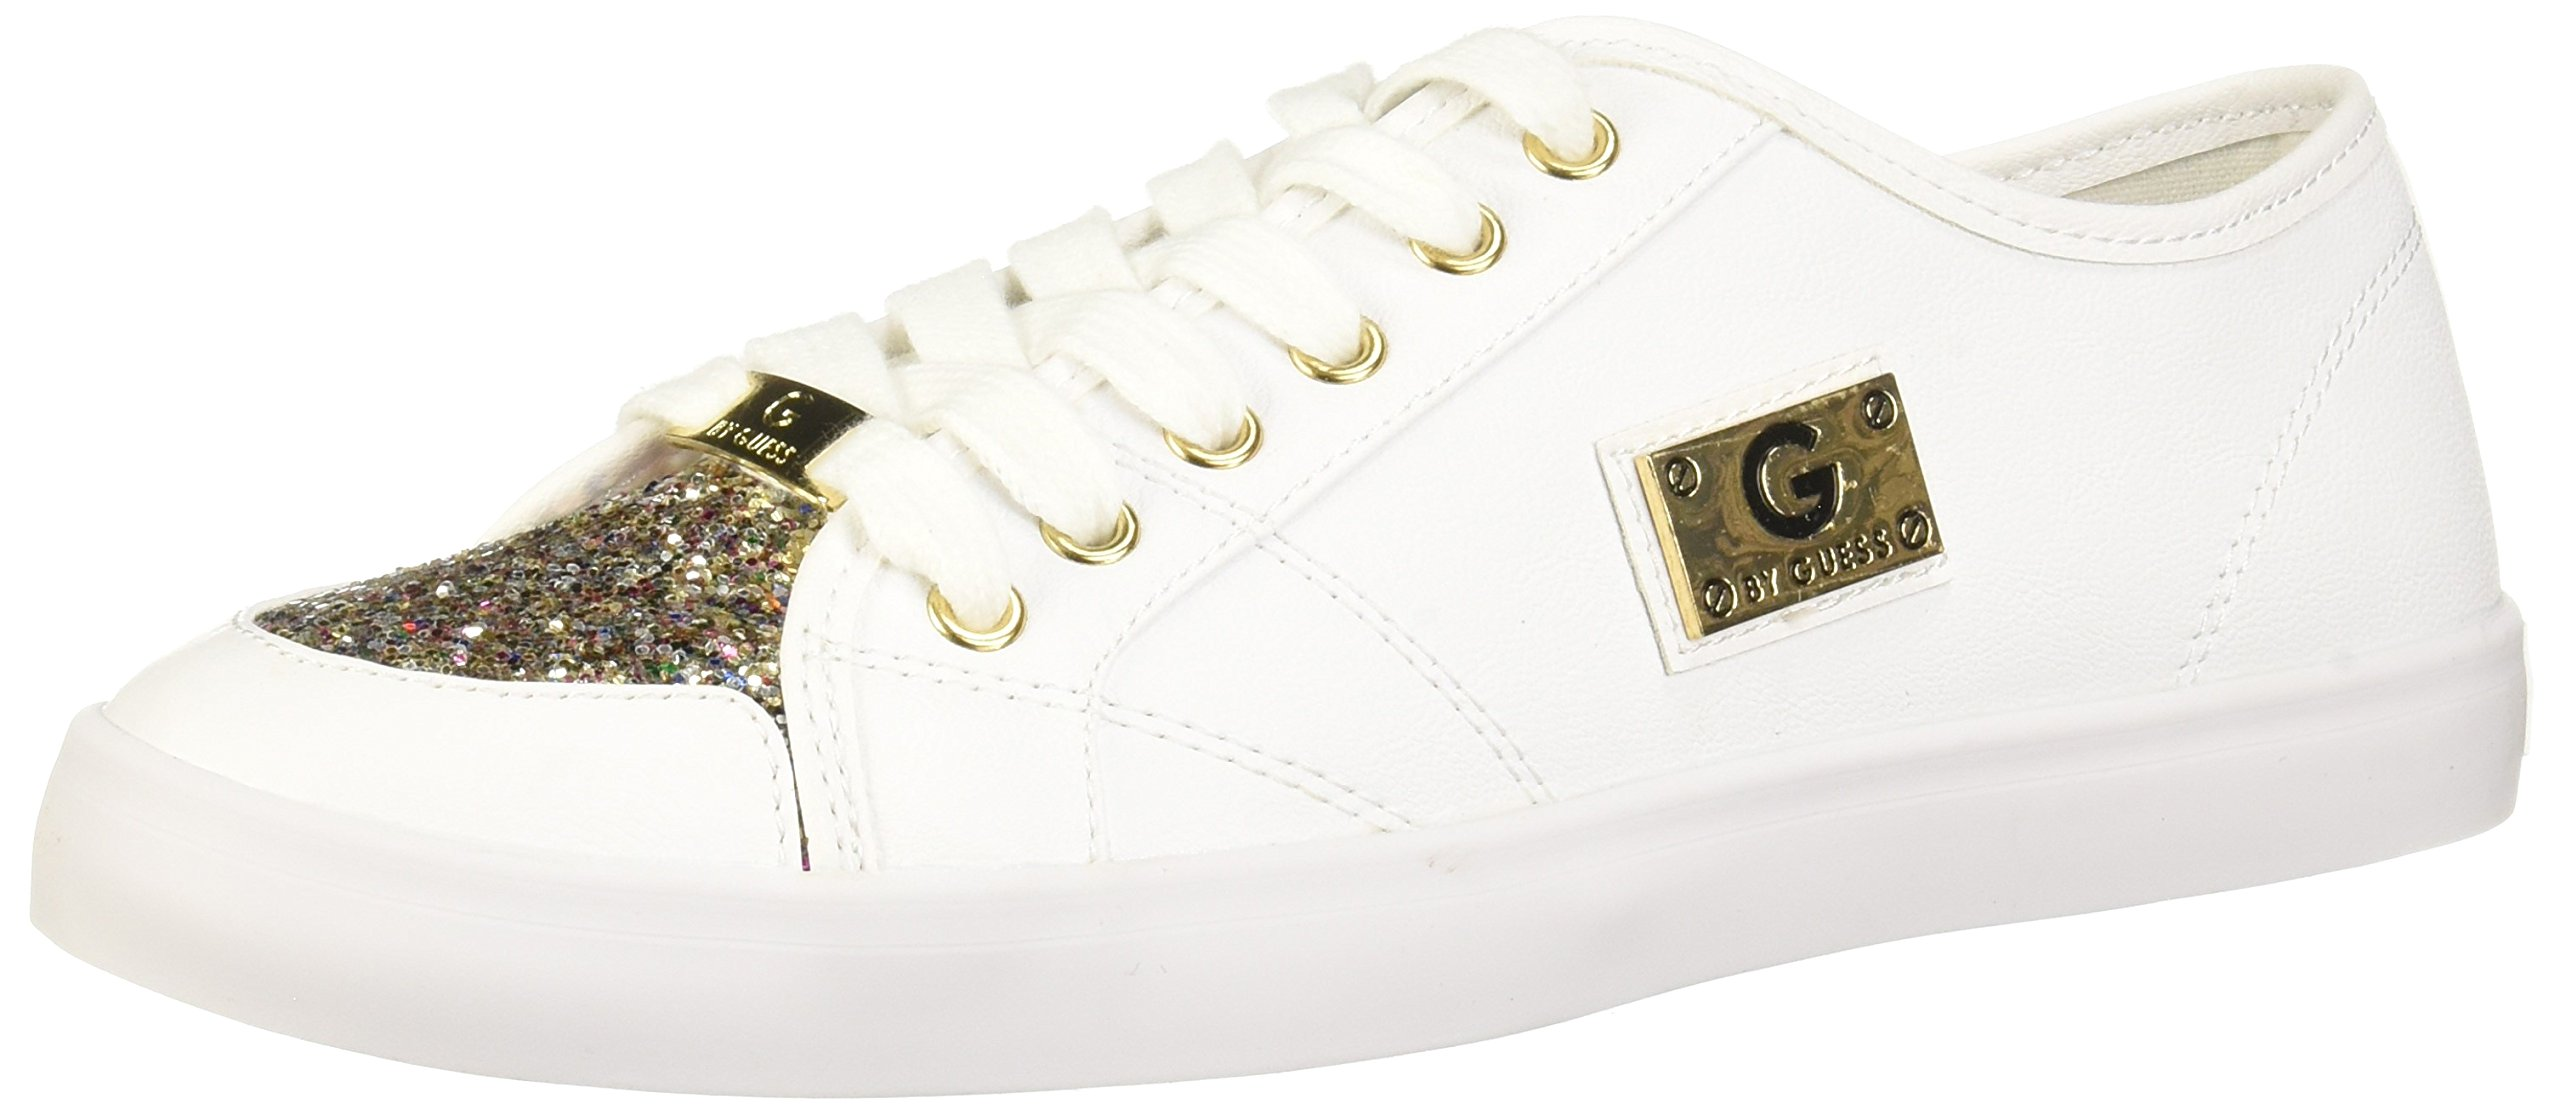 Lace-Up Glitter Sneakers Shoes (5.5